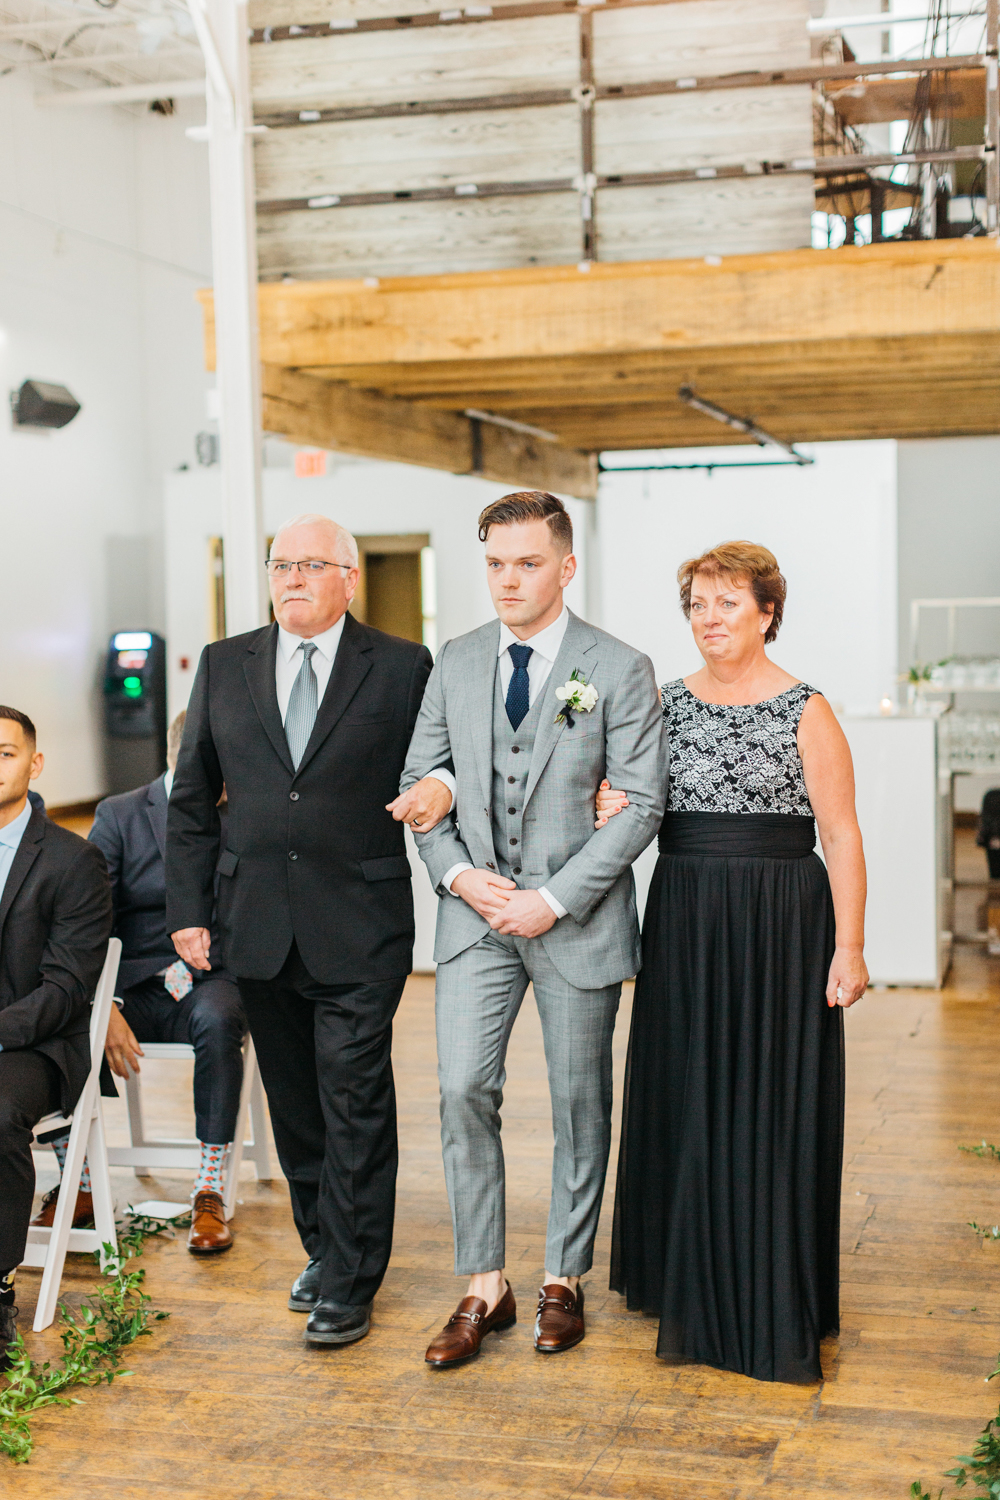 Groom walking down with parents during Ceremony at The Glass Factory